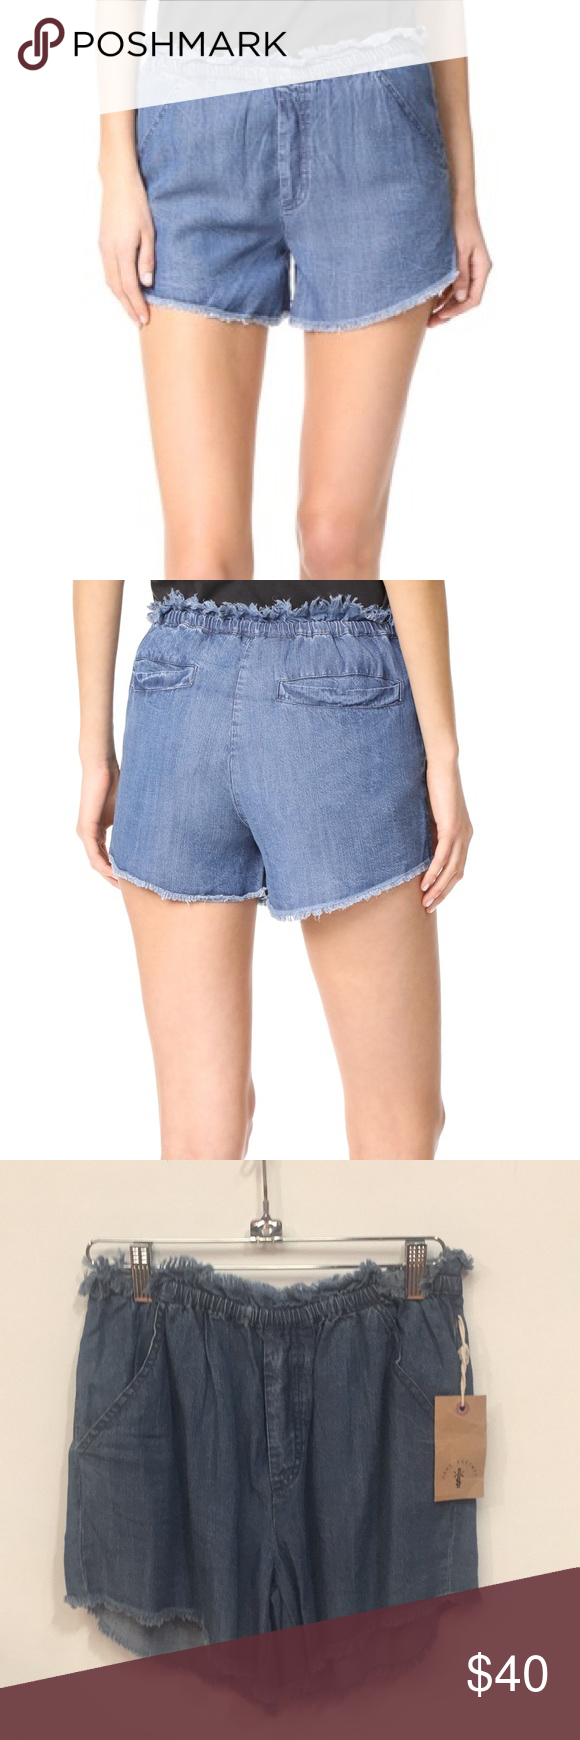 5aa1f41236ab Knot Sisters Jordan Shorts Chambray shorts with frayed hem and waist. Brand  new with tags Knot Sisters Shorts